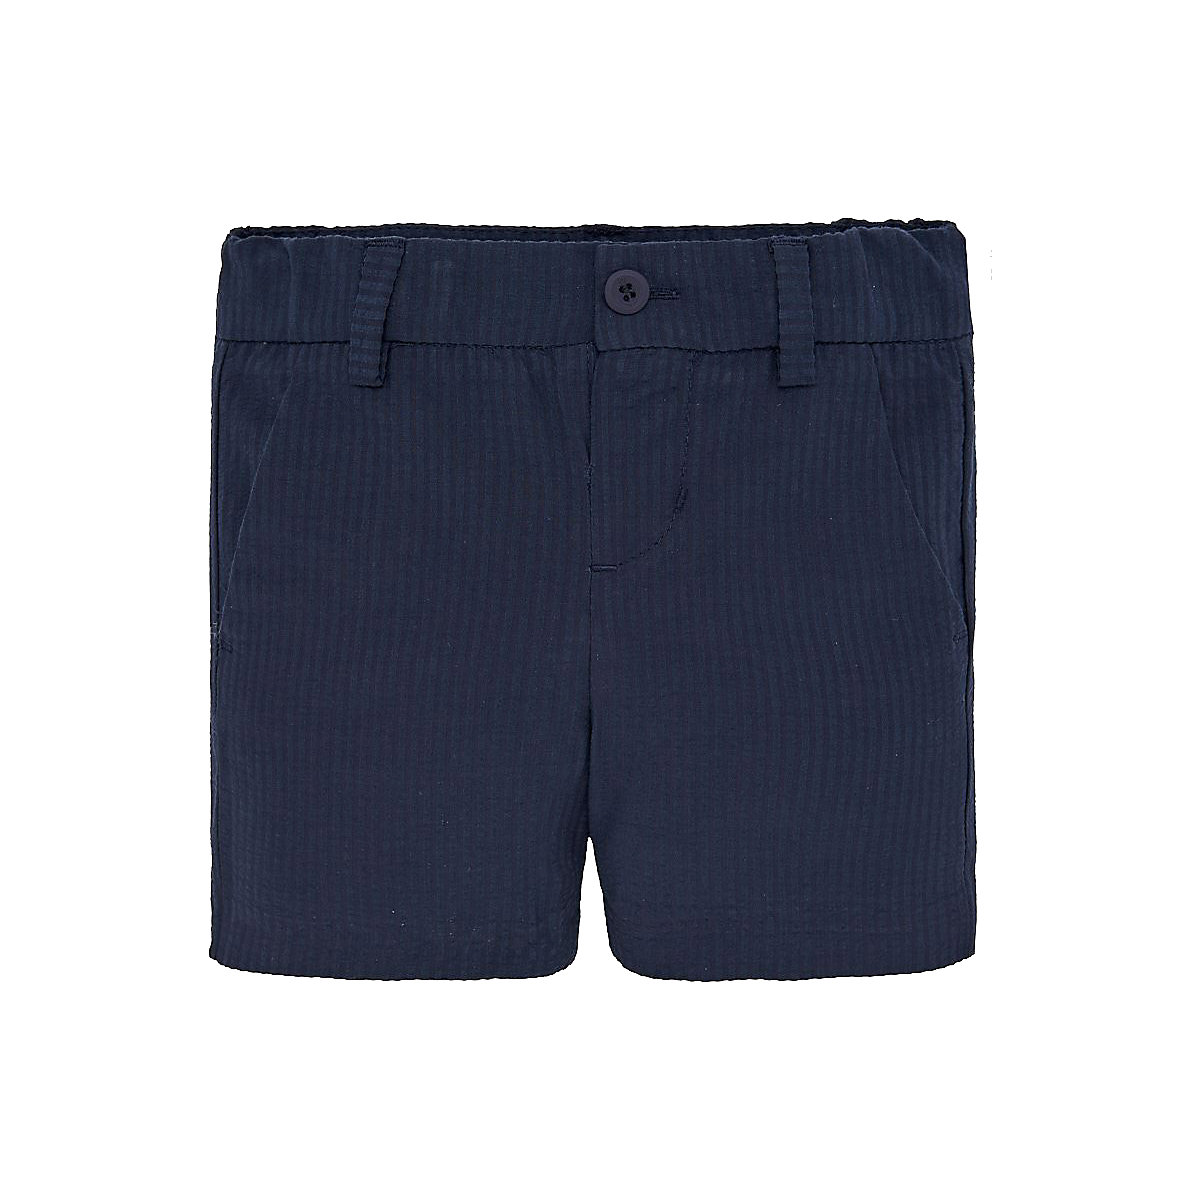 MAYORAL Shorts 10687223 for boys and girls child sport for teenagers clothes Cotton Boys